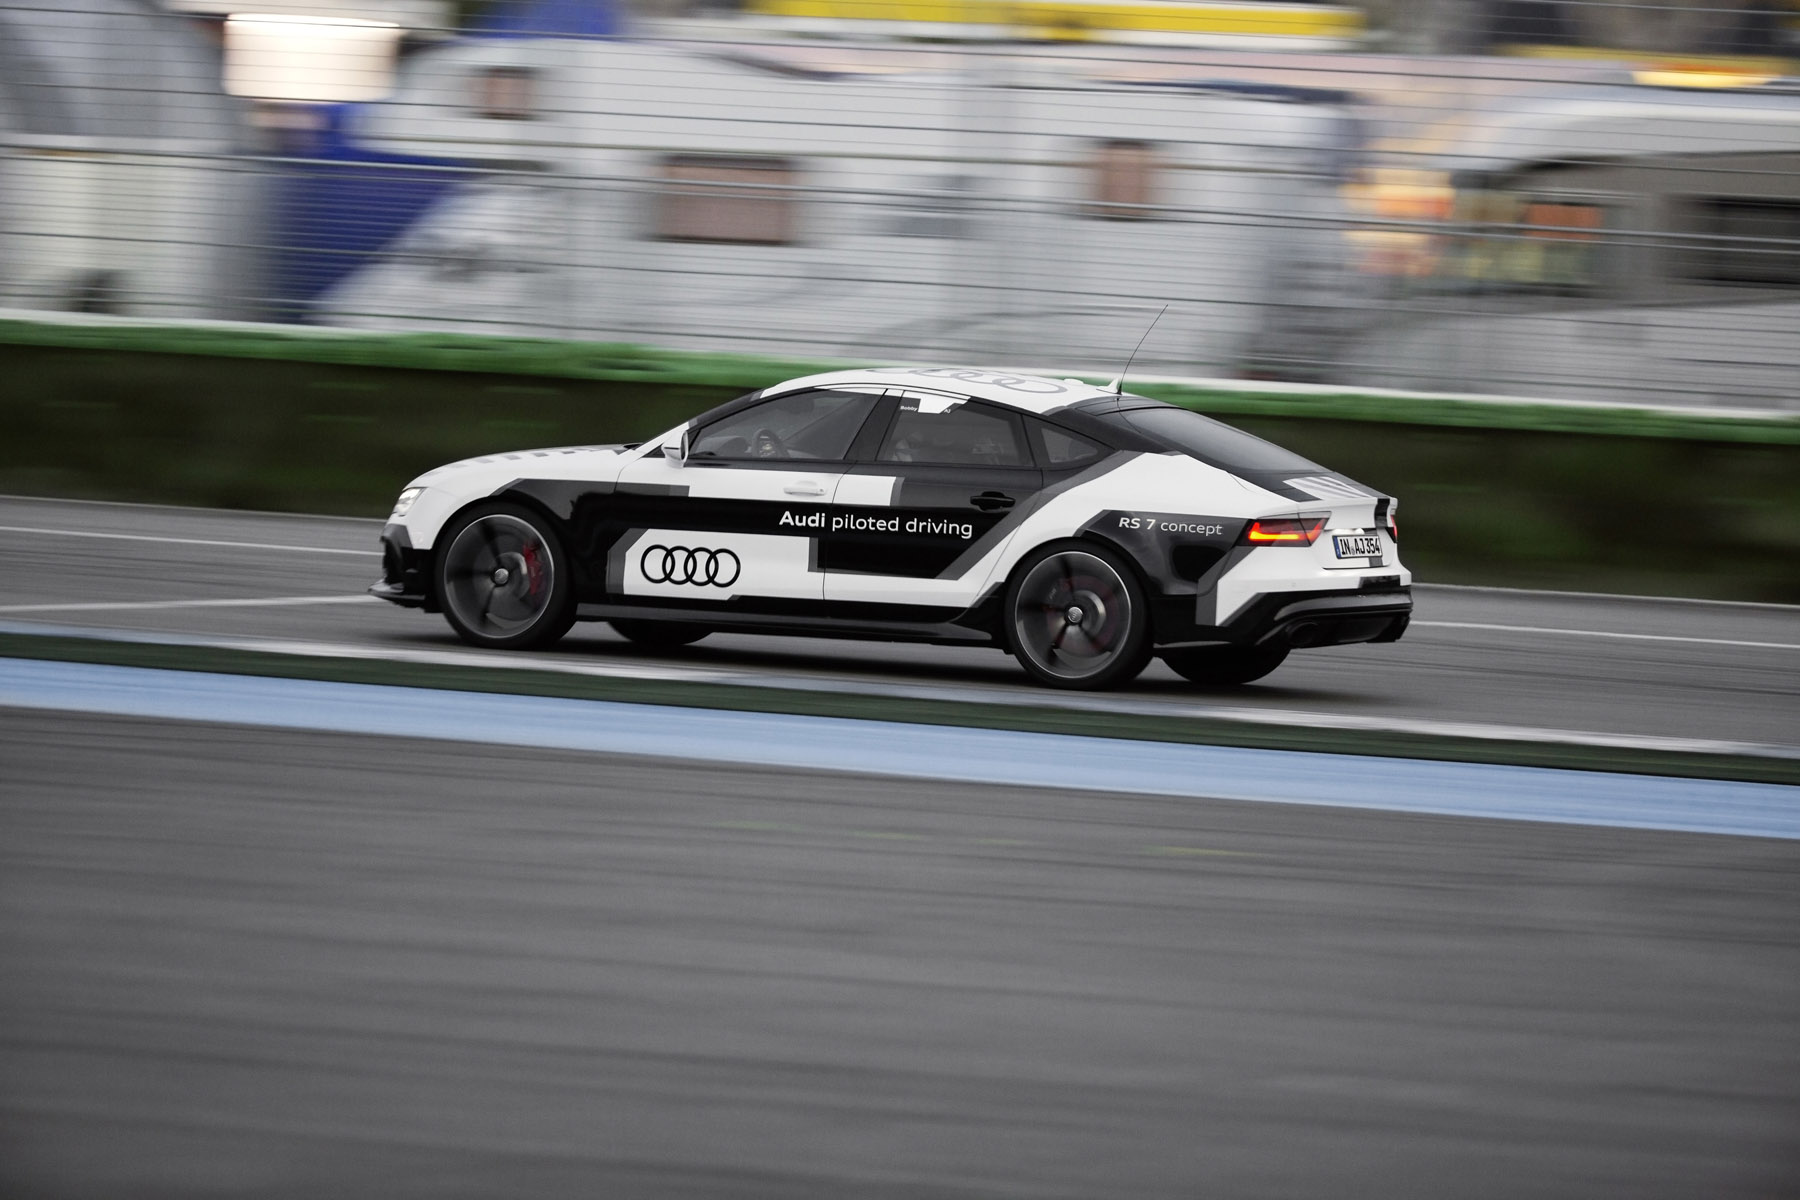 2014 Audi RS 7 Piloted Driving Concept Car